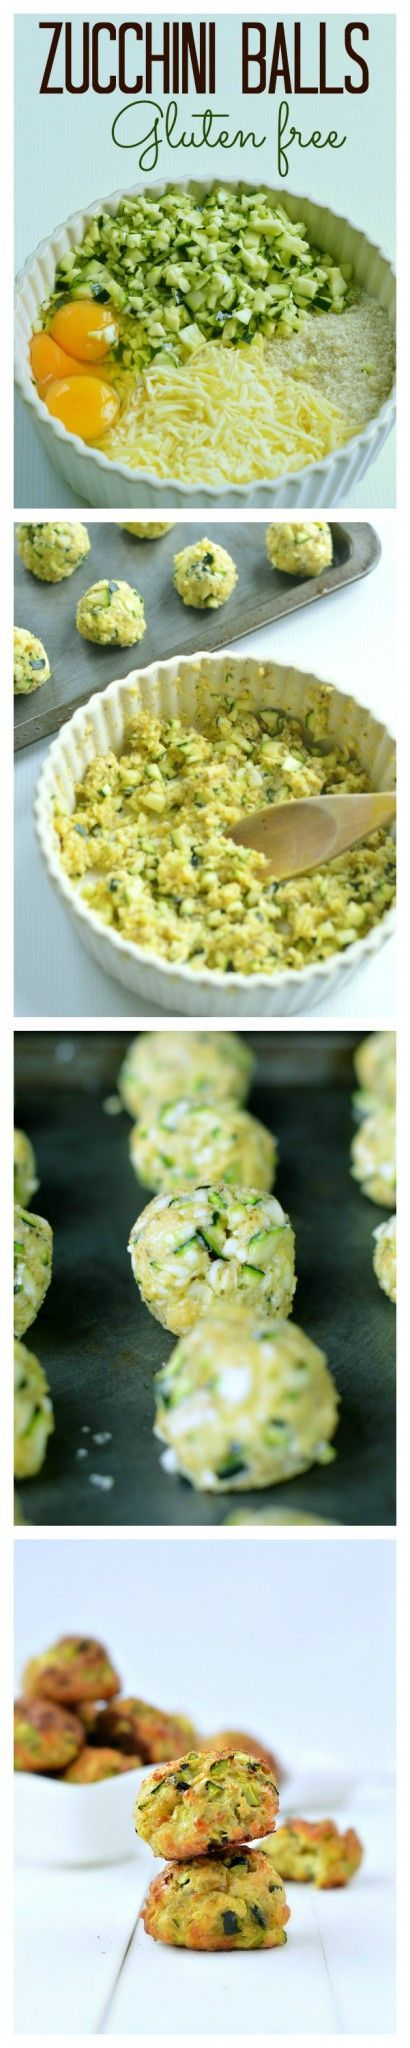 Healthy, quick & easy party appetizers, only 5 ingredients + few minutes to makes those baked zucchini balls and impress your guest. #cleaneating #zucchini #glutenfree                                                                                                                                                     More